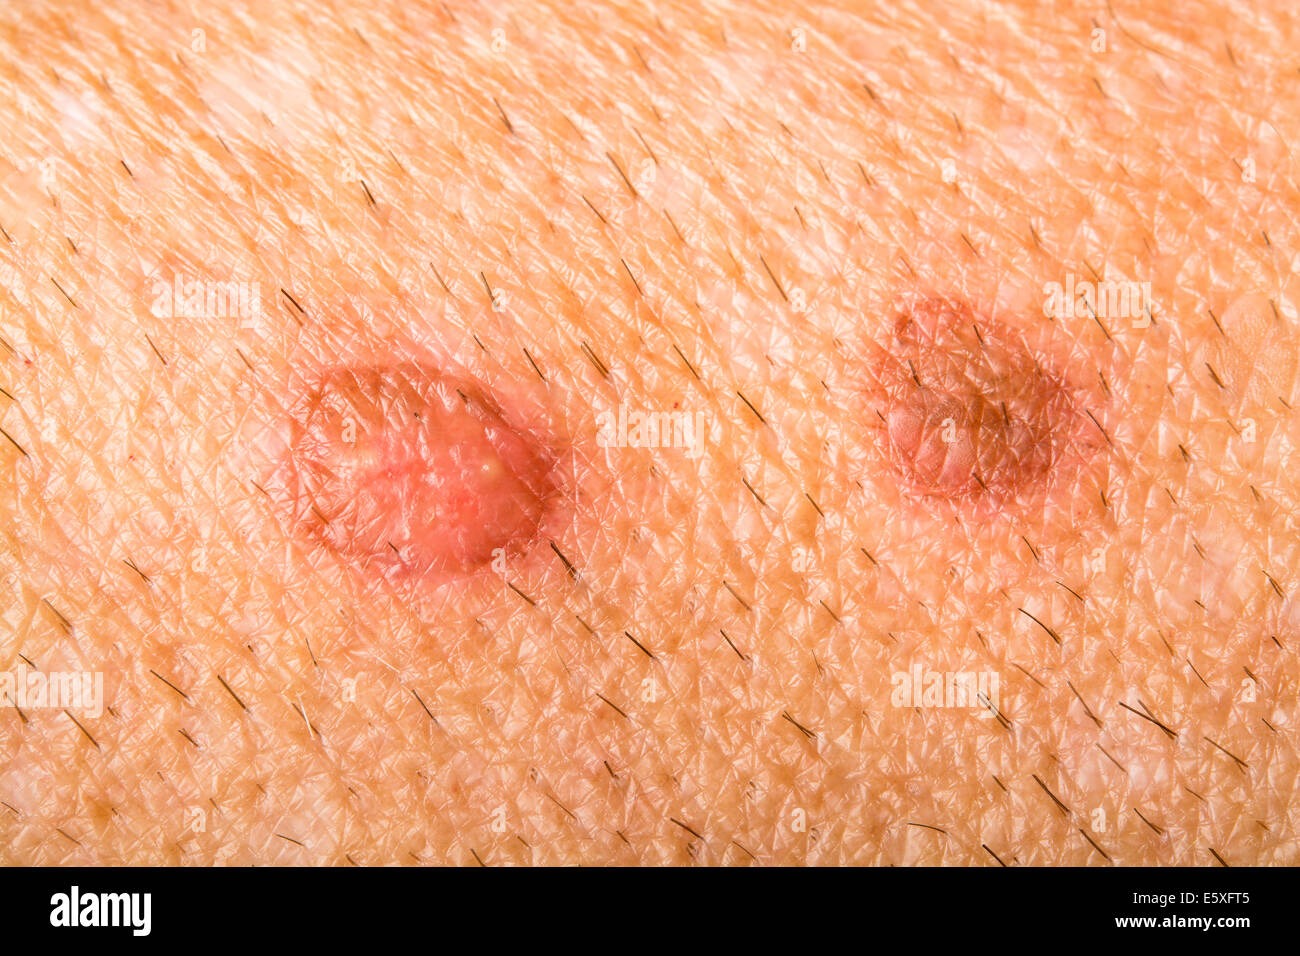 Sores on a human arm show the detail of the healing process by blistering and scabbing - Stock Image